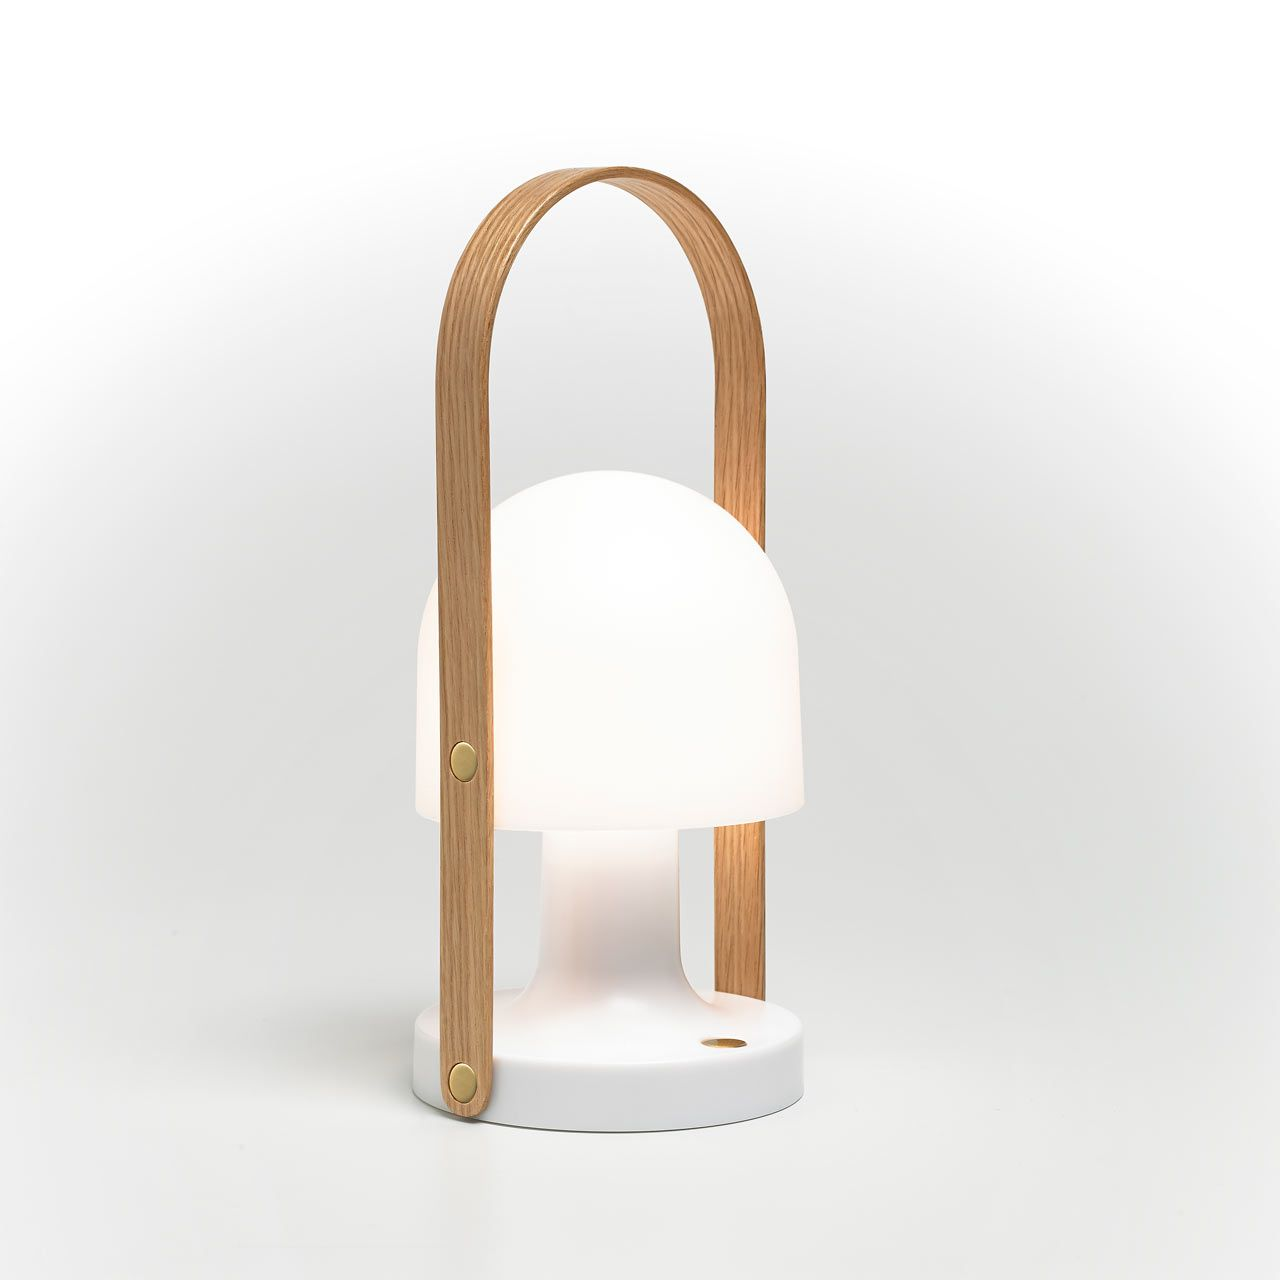 FollowMe A Portable Rechargeable L& Easy to Carry Around. Exterior LightingFollow MeLighting ...  sc 1 st  Pinterest & FollowMe: A Portable Rechargeable Lamp Easy to Carry Around ... azcodes.com